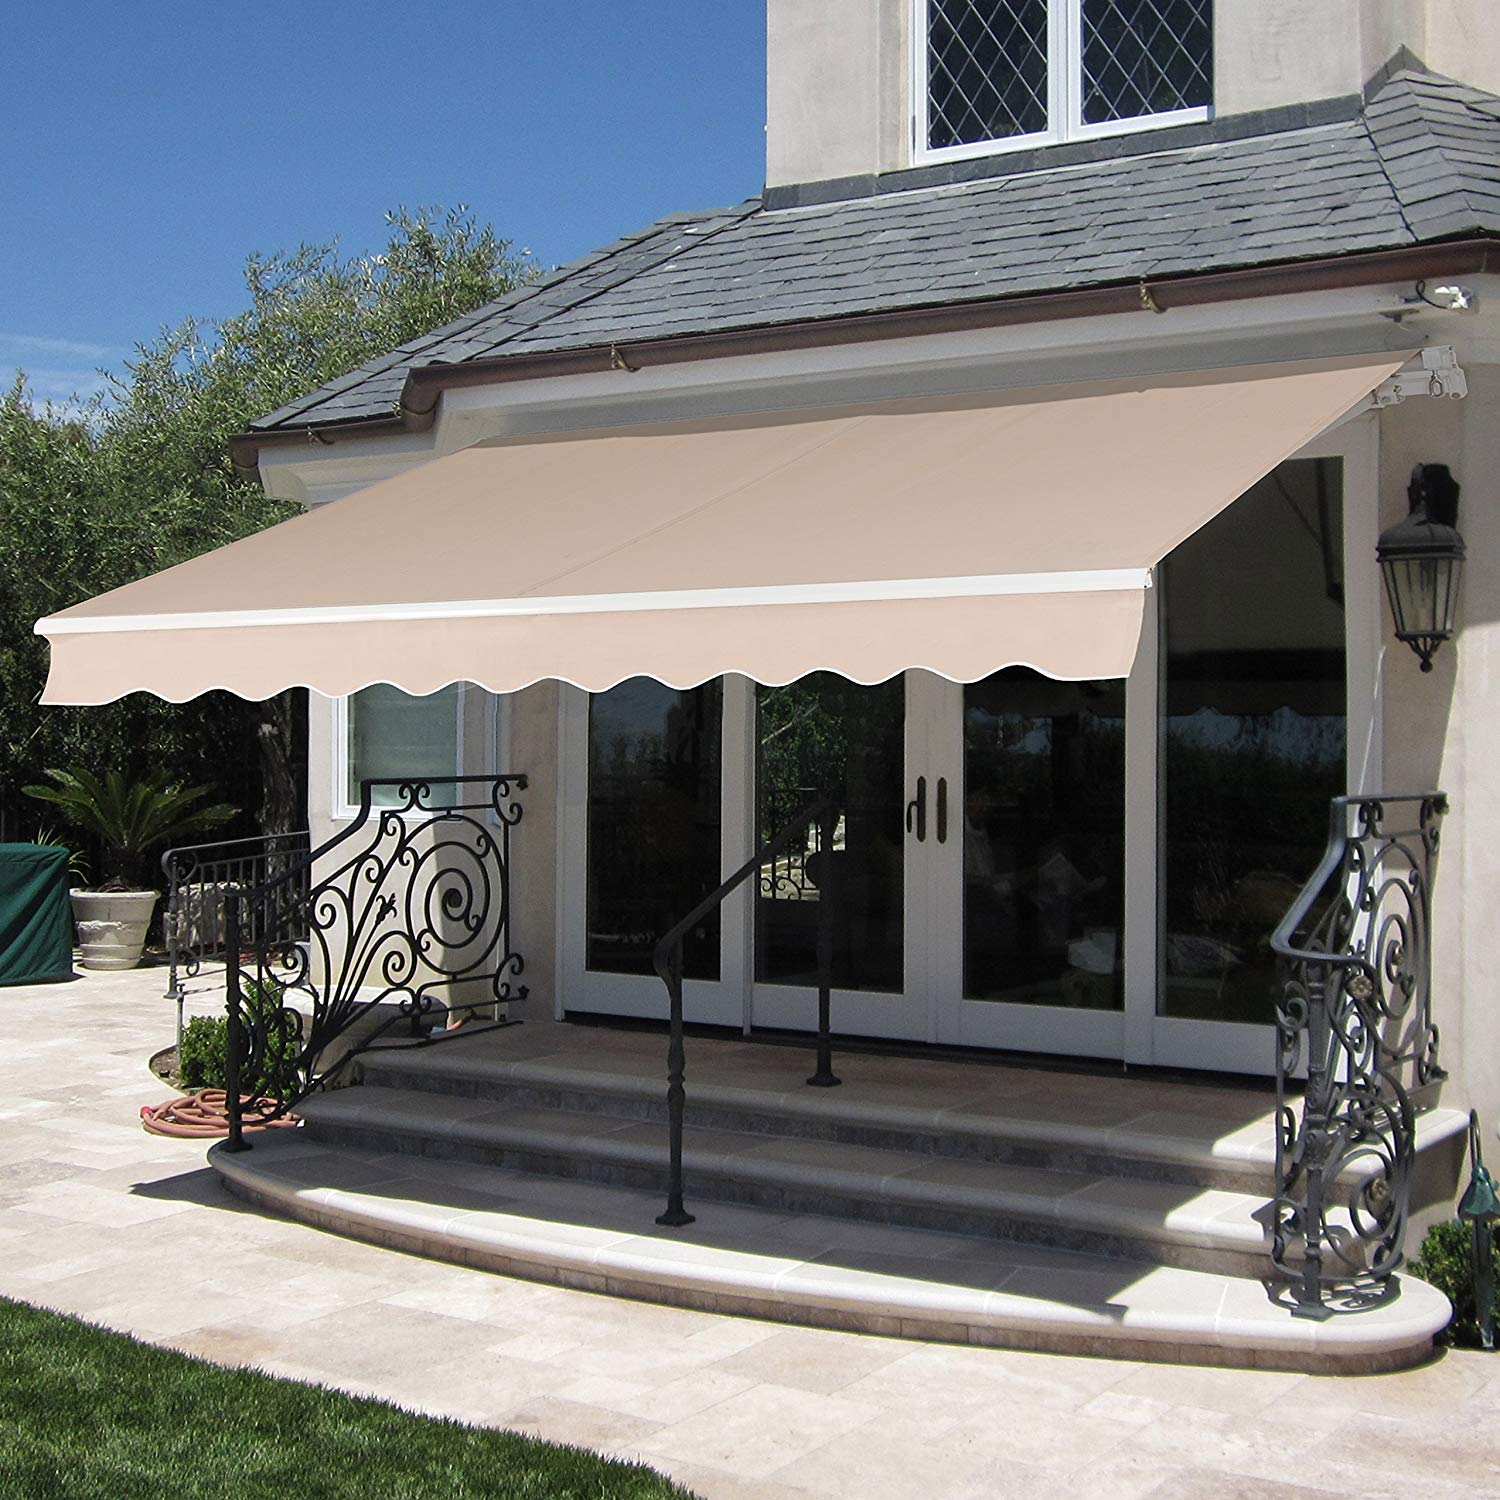 Mcombo 10 X 8 Ft Patio Awning Retractable Manual Commercial Grade Quality 100 280g